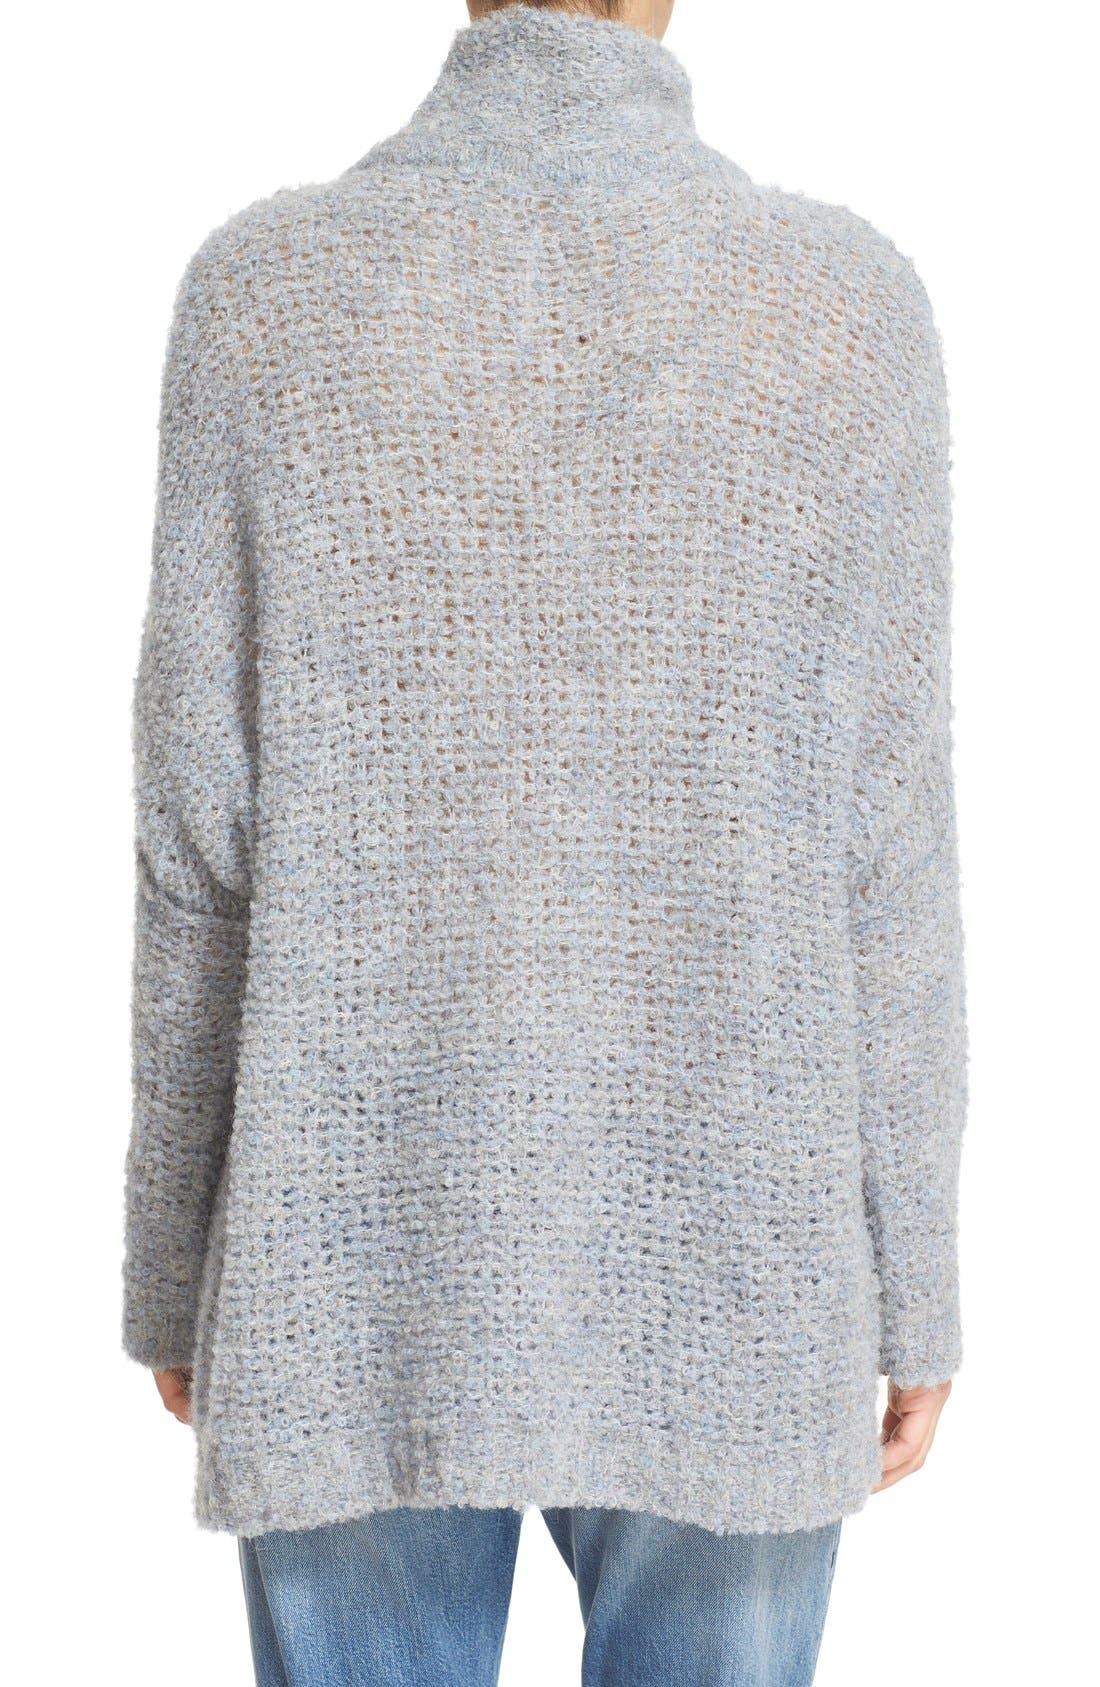 'She's All That' Knit Turtleneck Sweater,                             Alternate thumbnail 13, color,